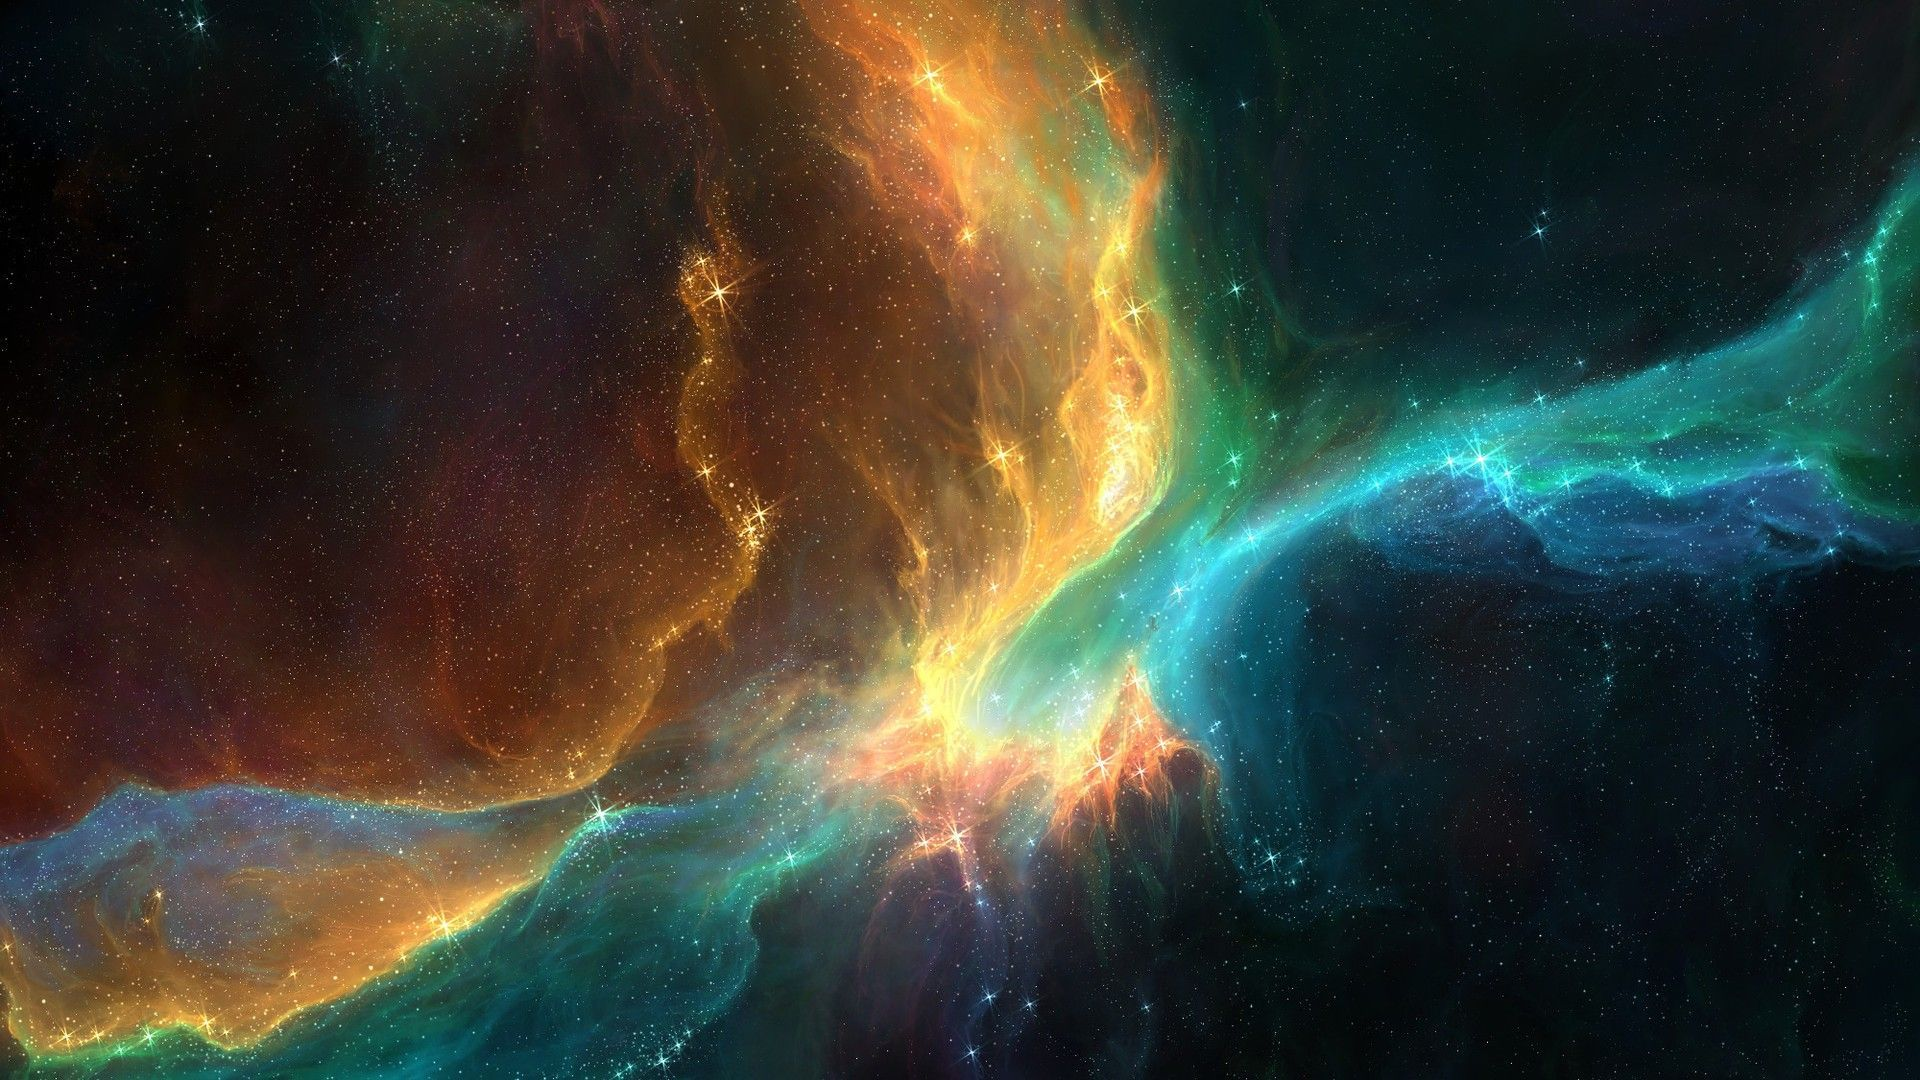 outer space wallpaper - sf wallpaper